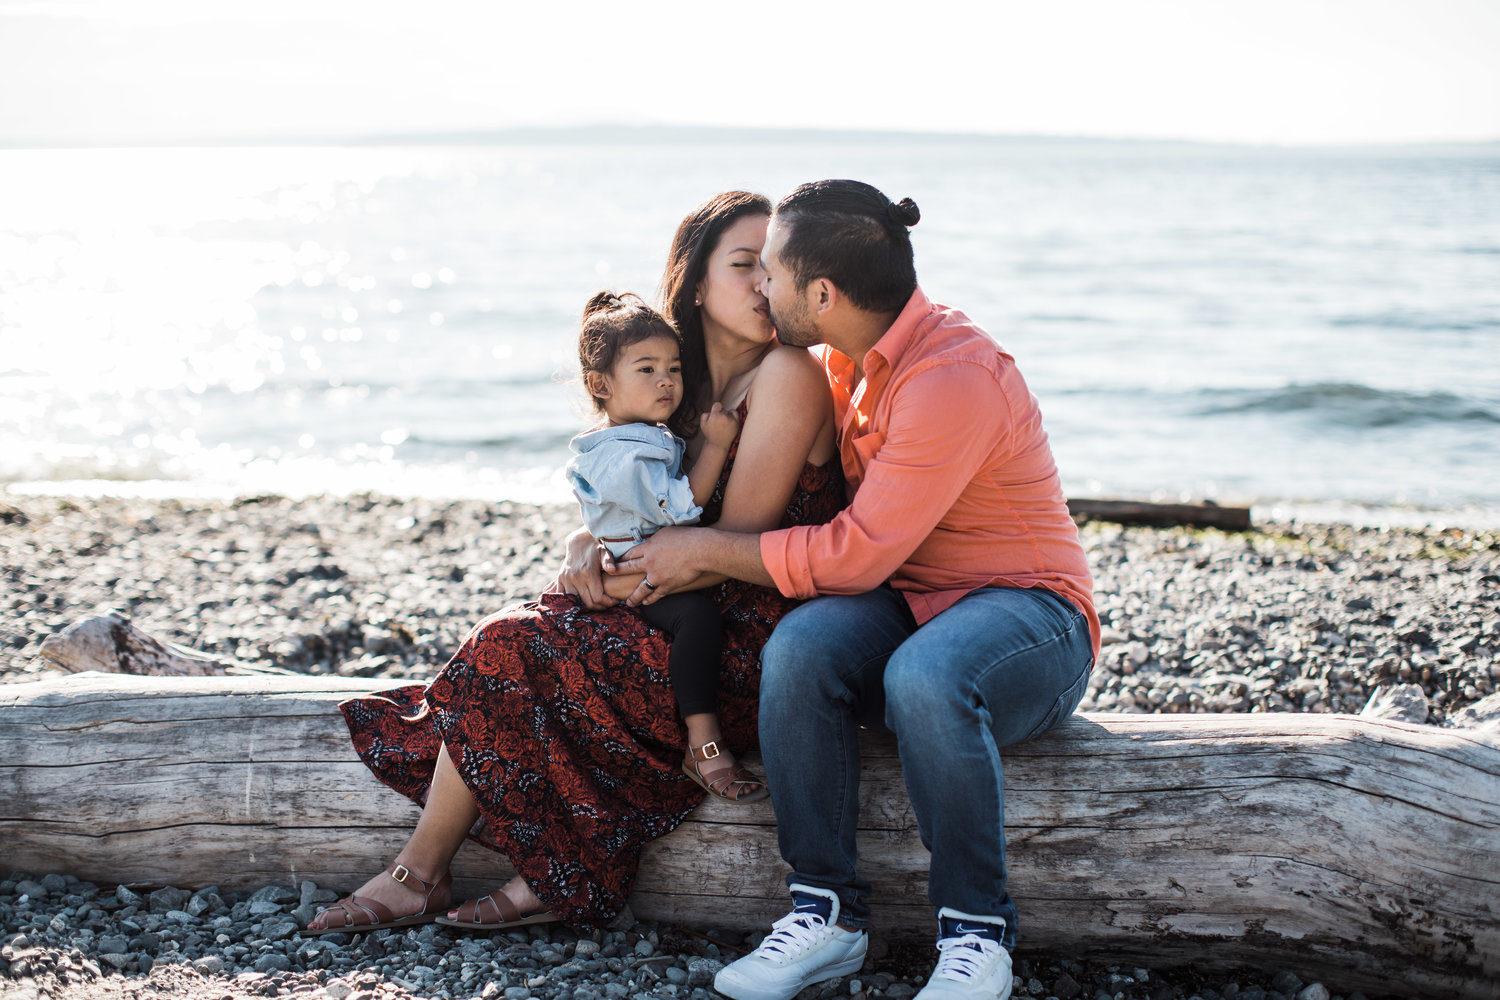 What Every Family Photographer Can Do to Create Connection